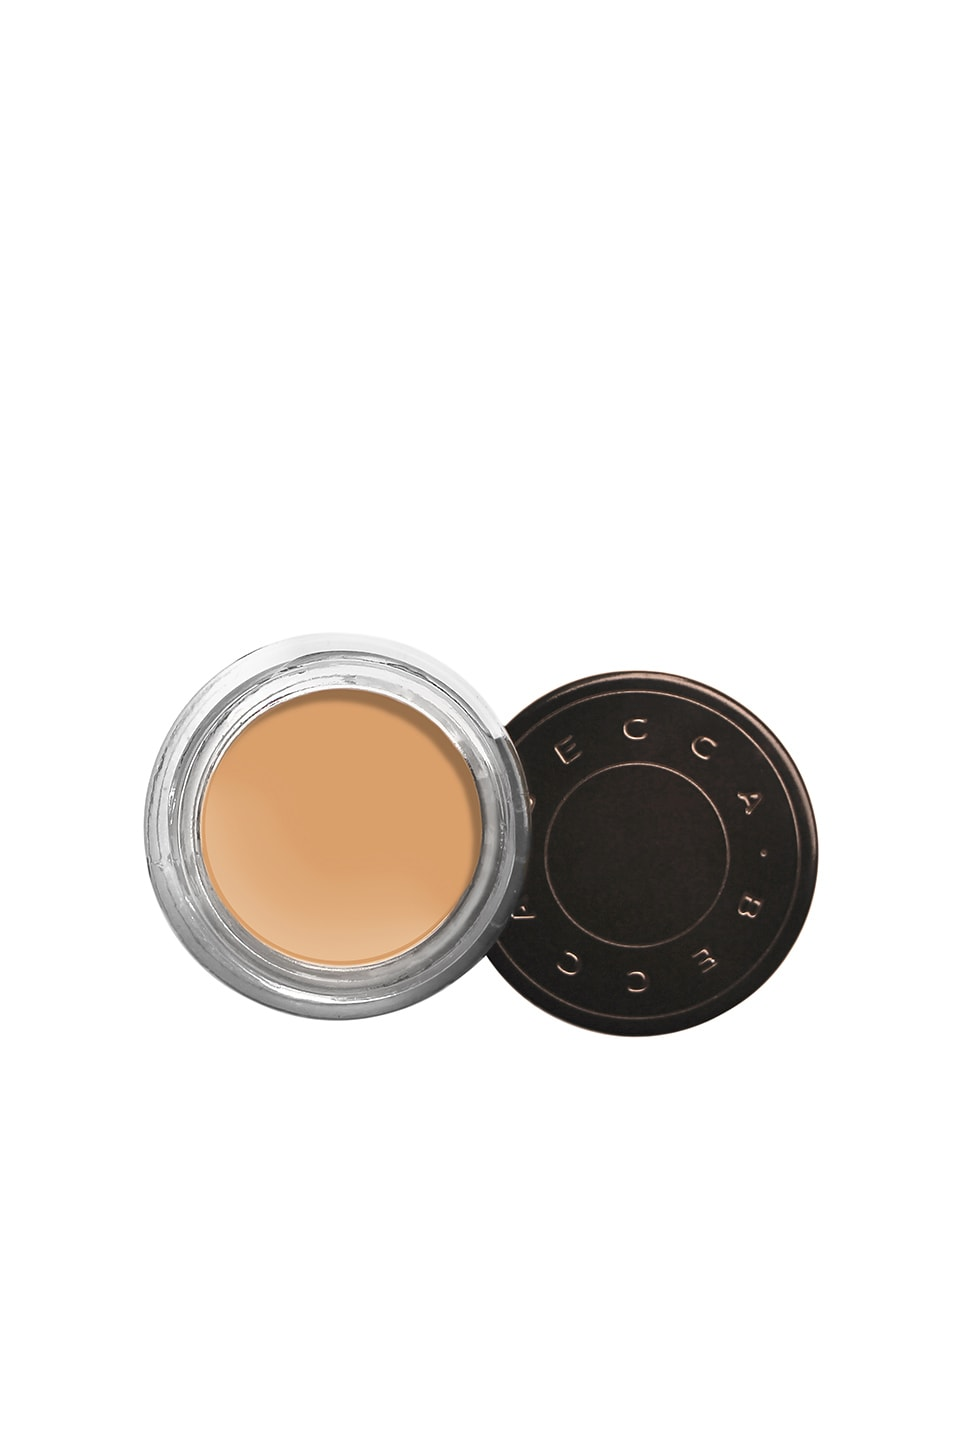 BECCA Ultimate Coverage Concealing Creme in Macadamia